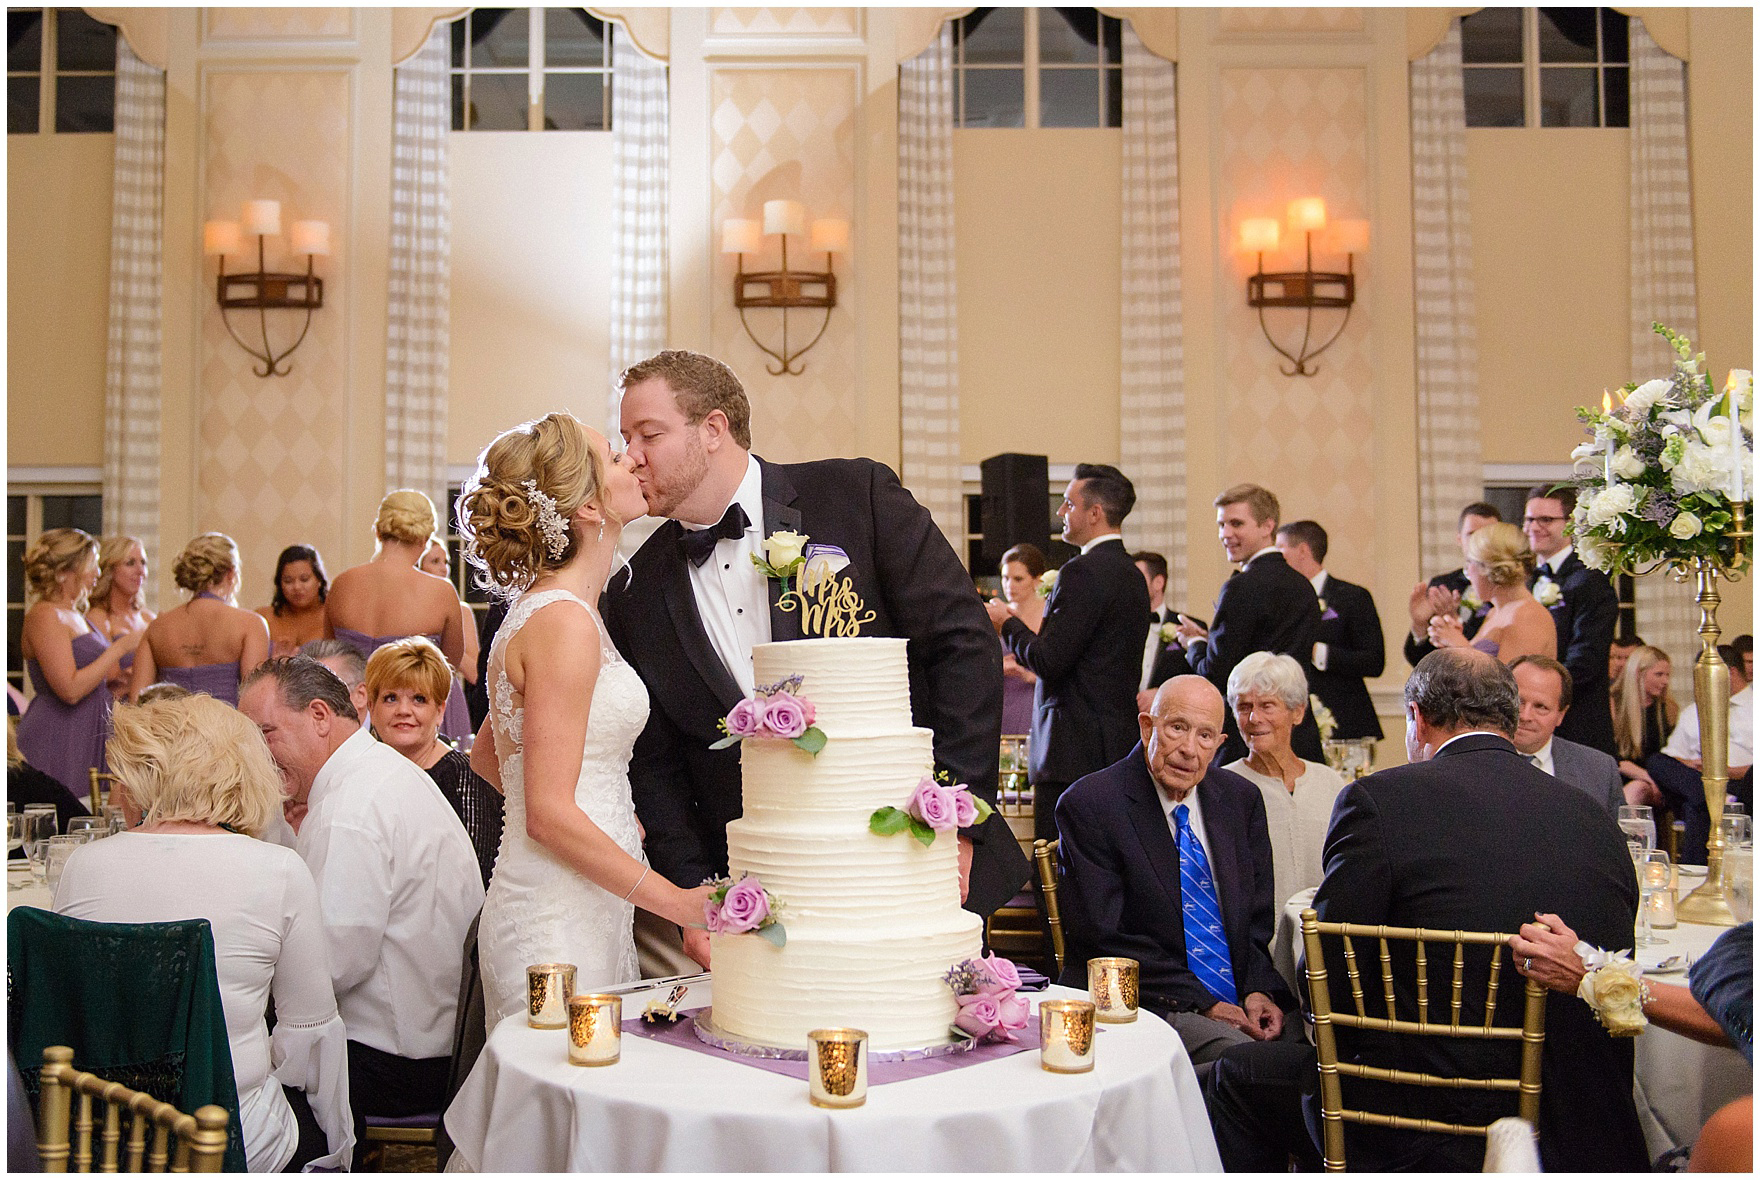 The bride and groom kiss after cutting their cake at a Glen Club Glenview Illinois wedding.